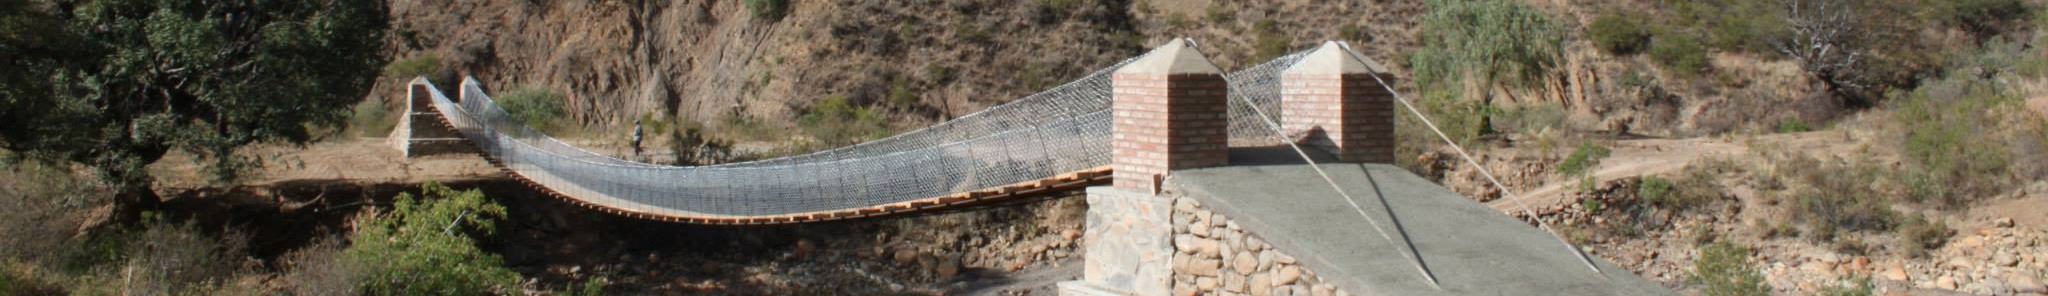 bridge built by DEID students